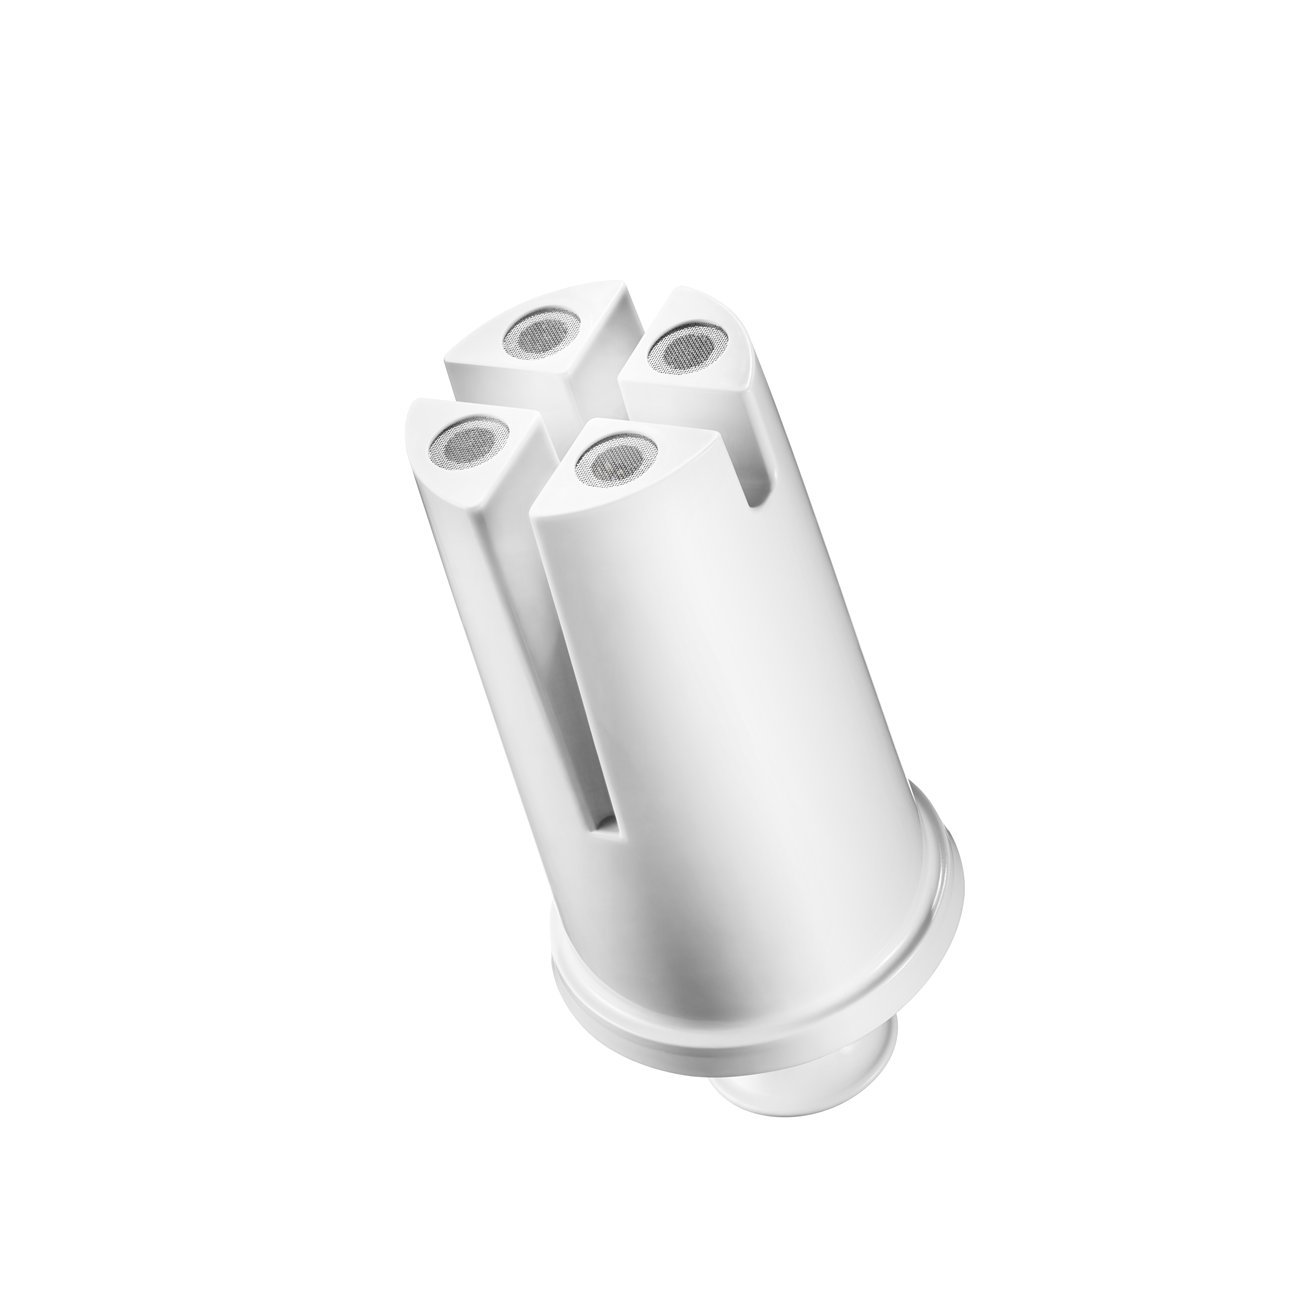 Brita Water Pitcher Filter Replacements 2 Count by Brita (Image #8)